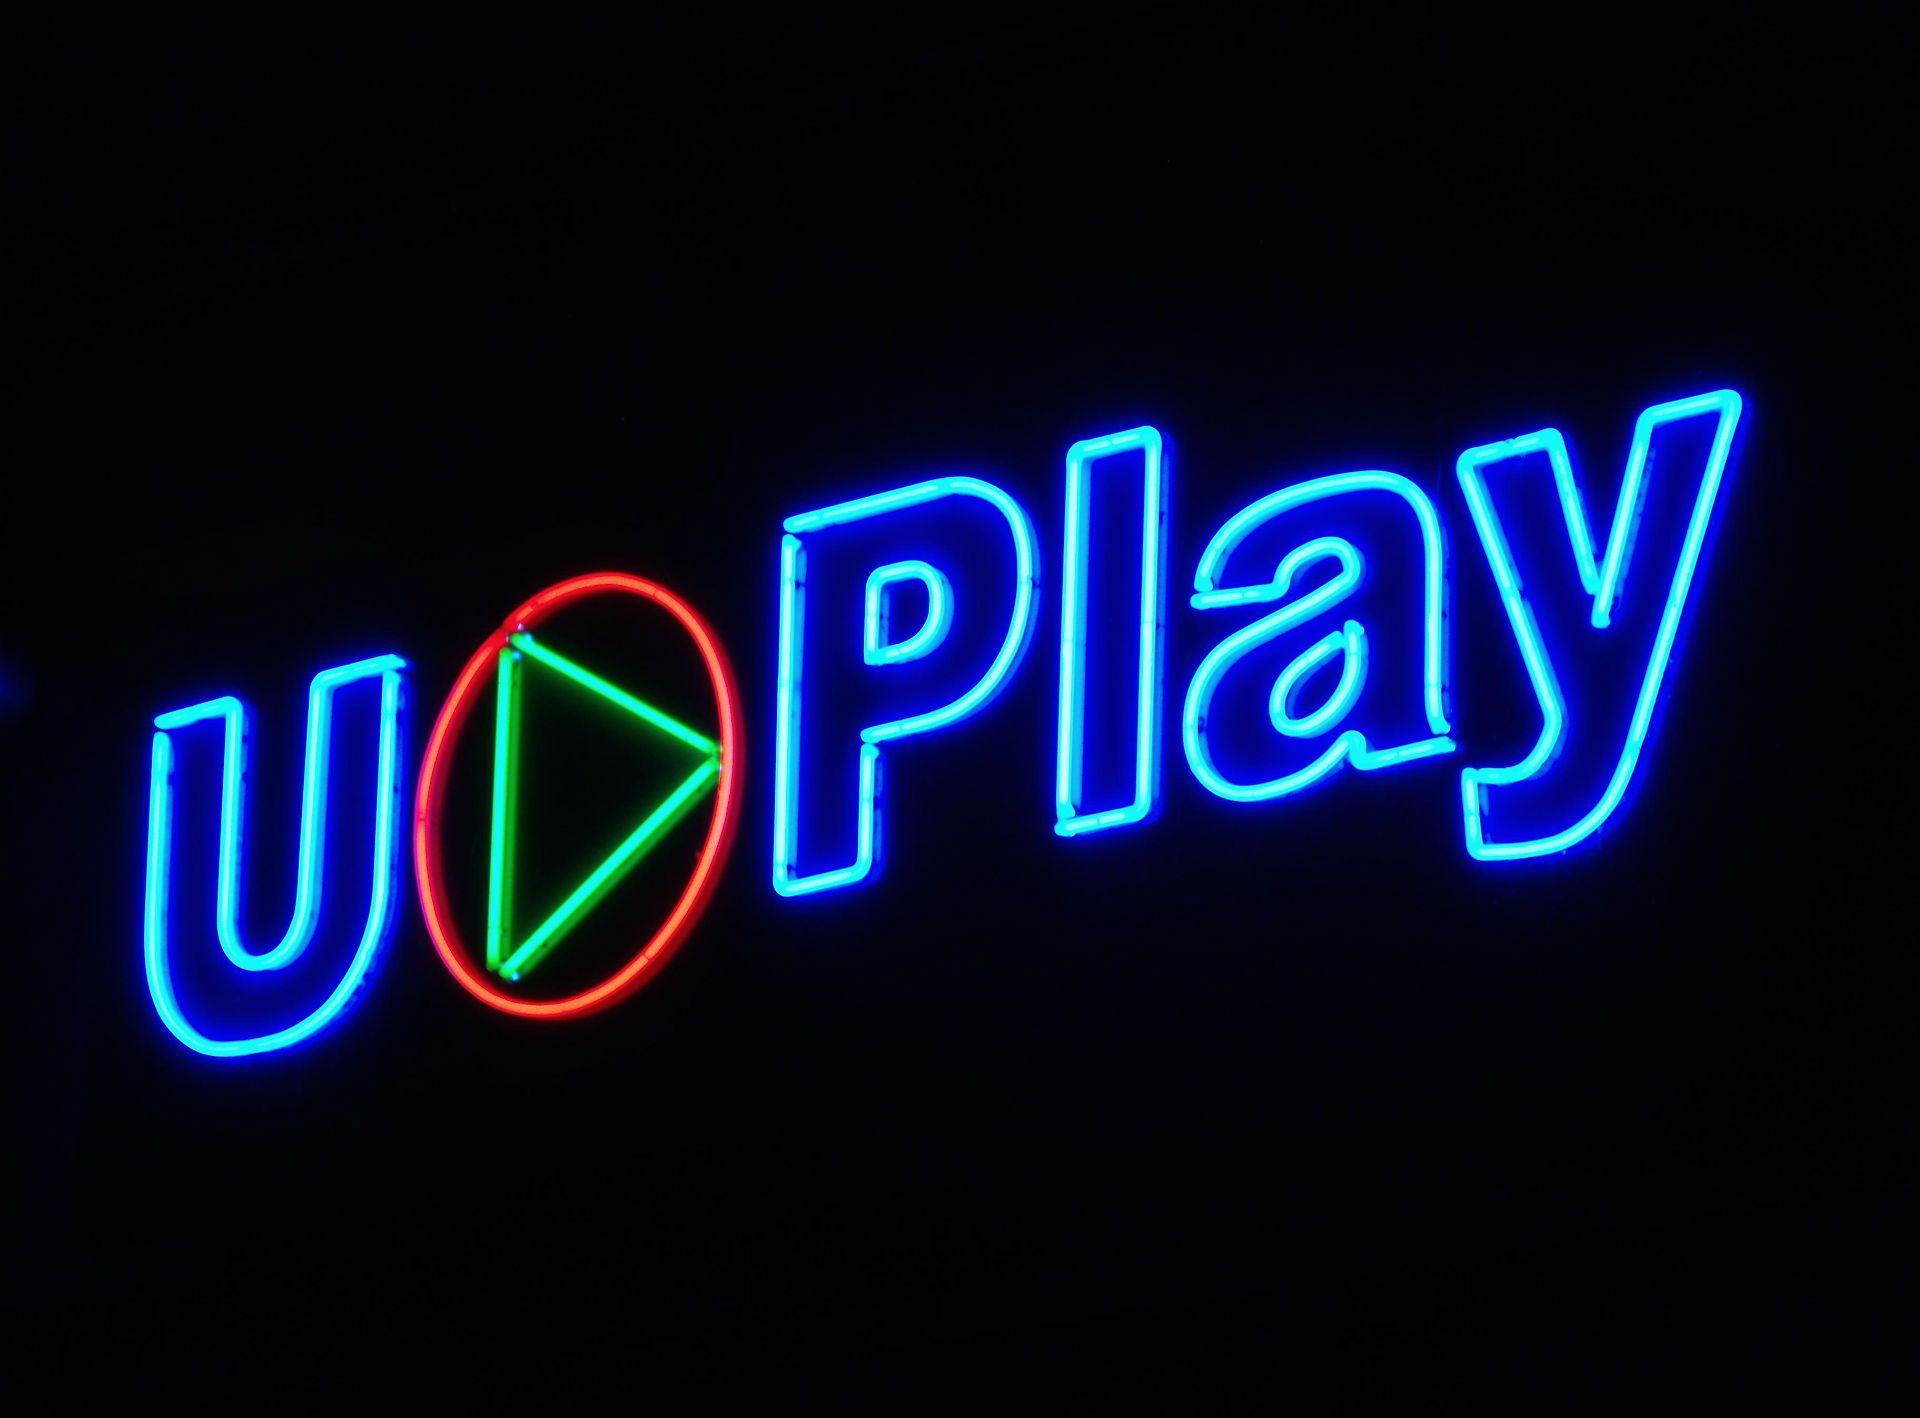 Cool Neon Sign In High Quality